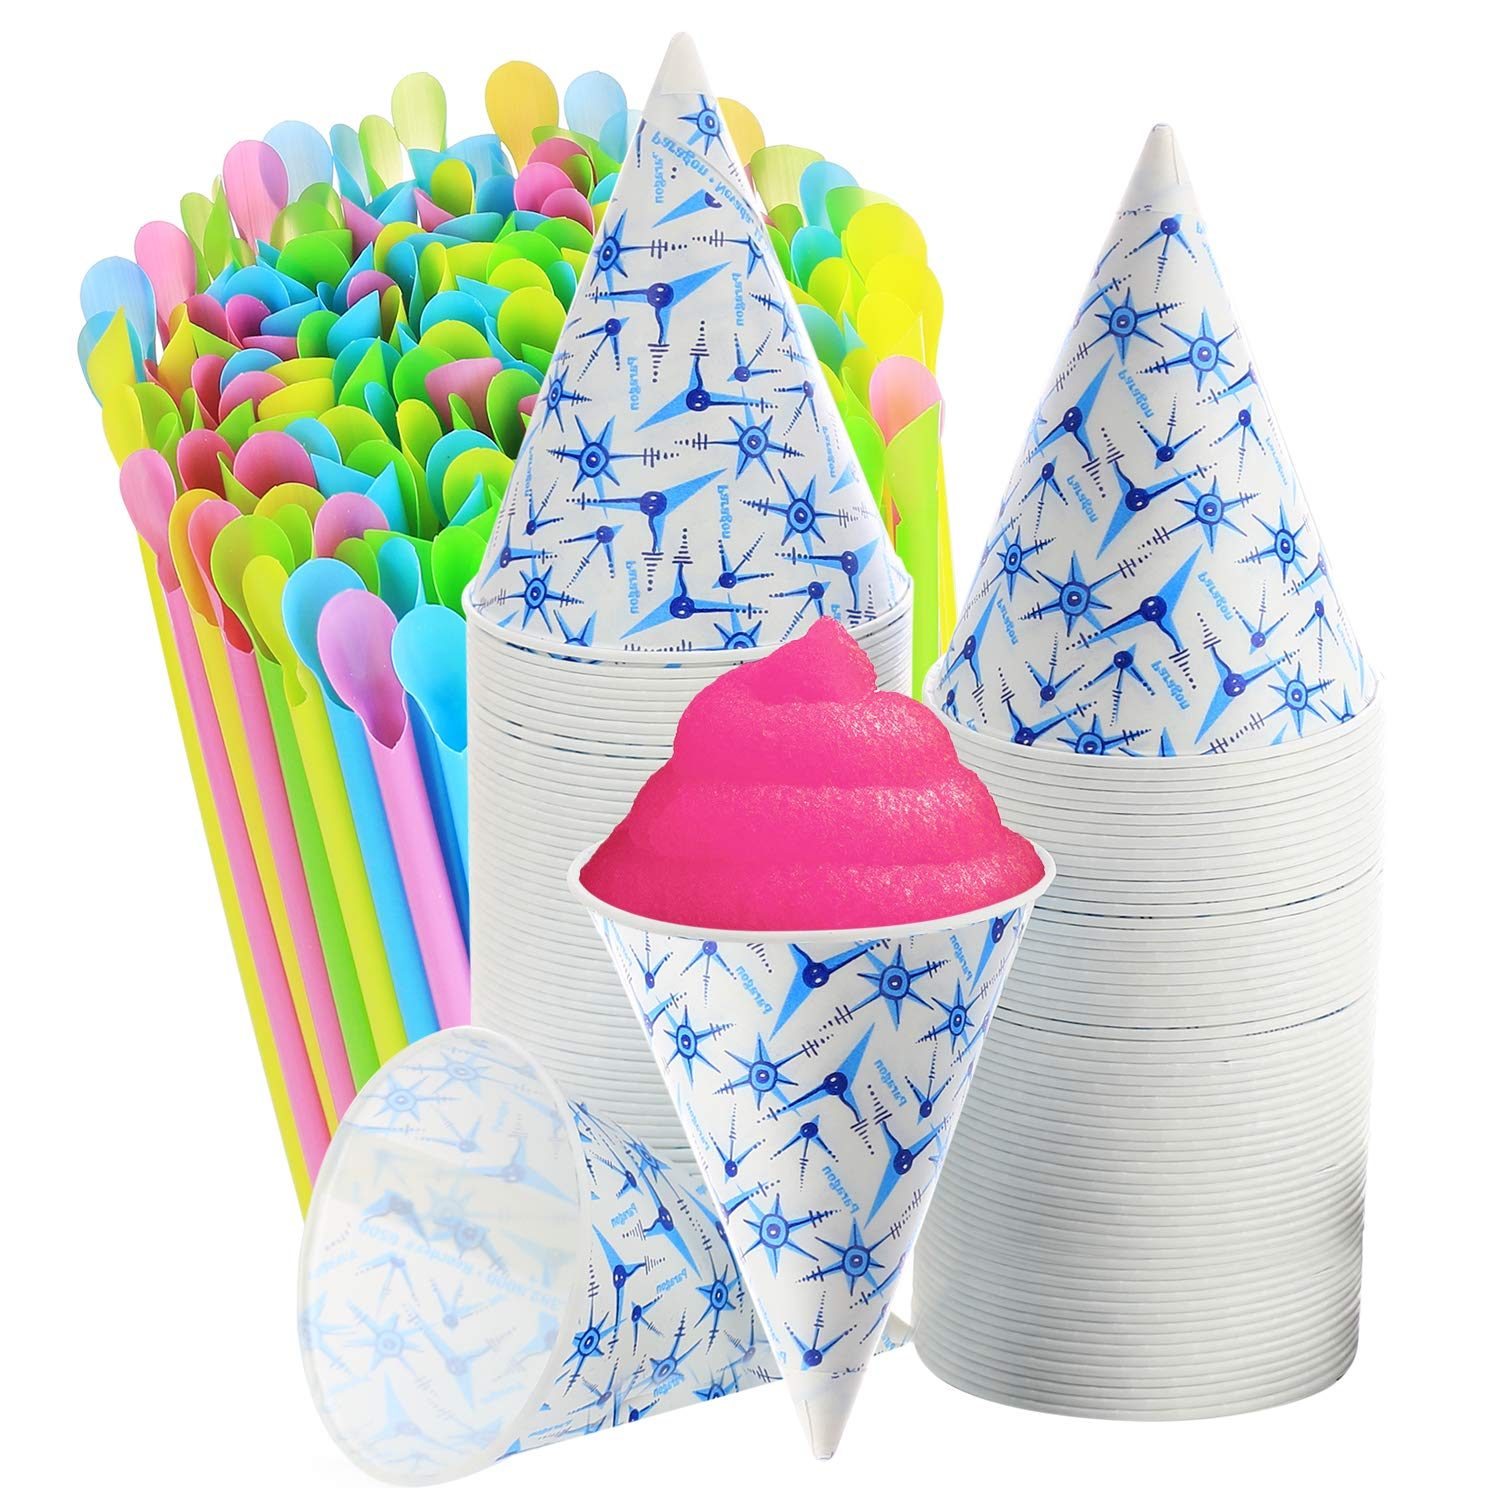 Set of 400-200 Snow Cone Cups 6 Oz, and 200 Sno-Cone Spoon Drinking Straws, Assorted Neon Colors,